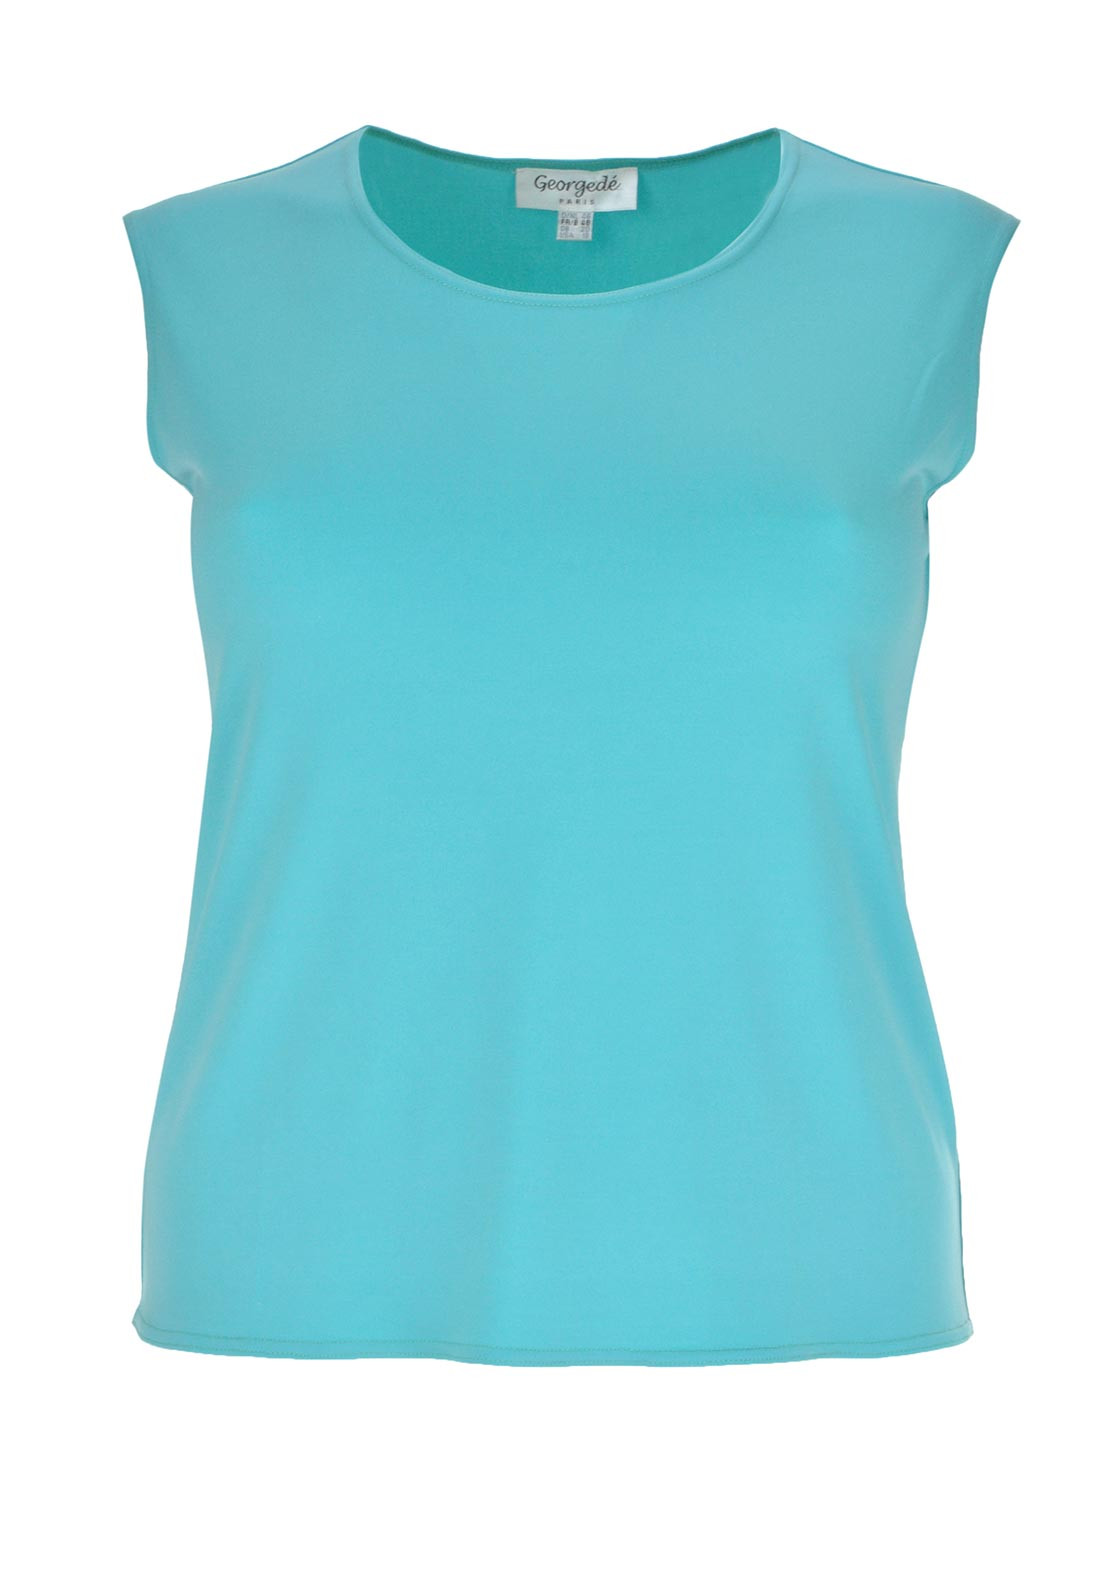 Georgede Sleeveless Top, Aqua